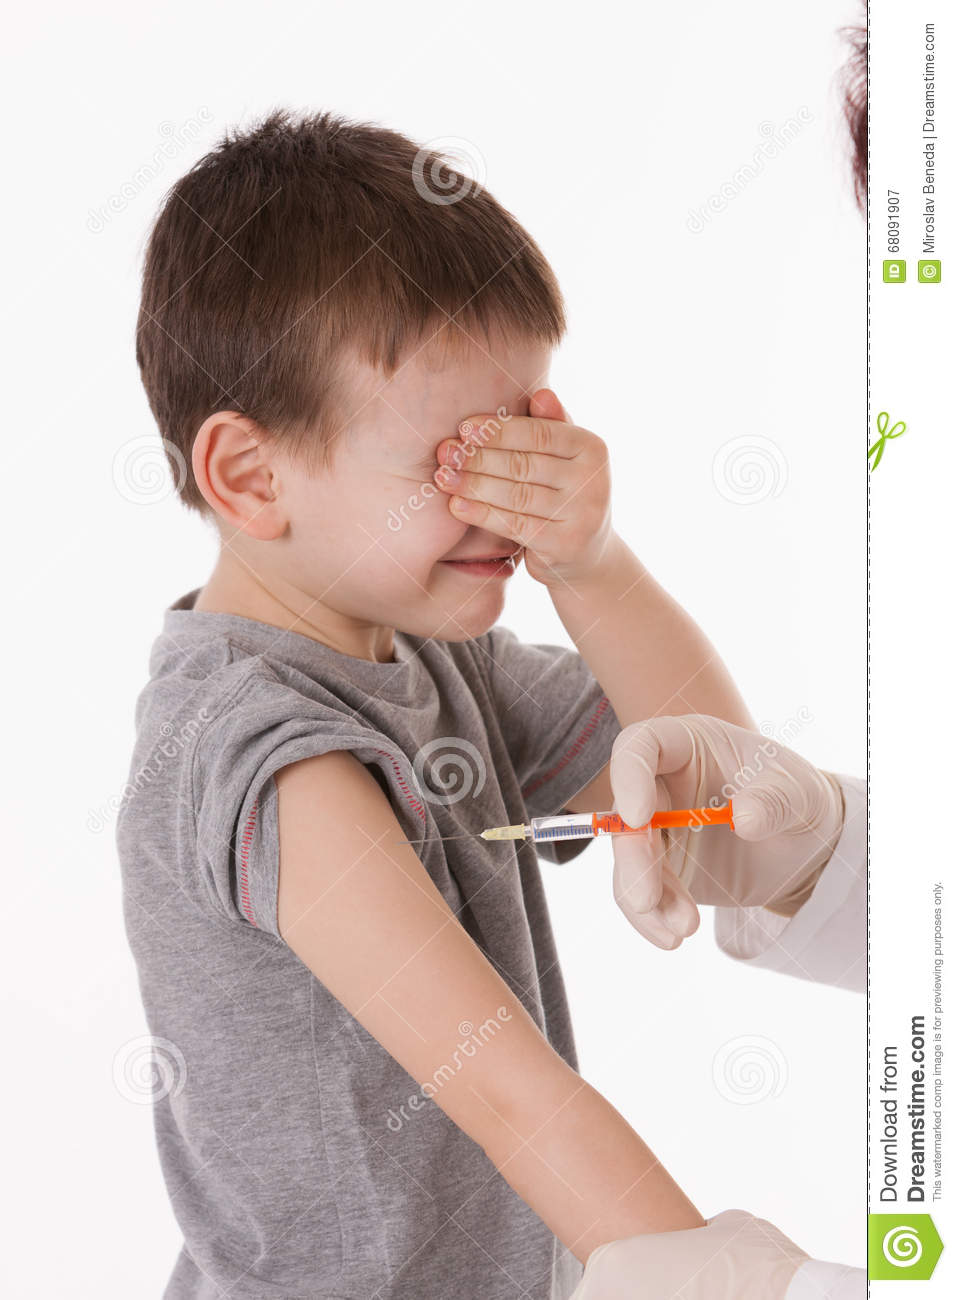 Child with injection